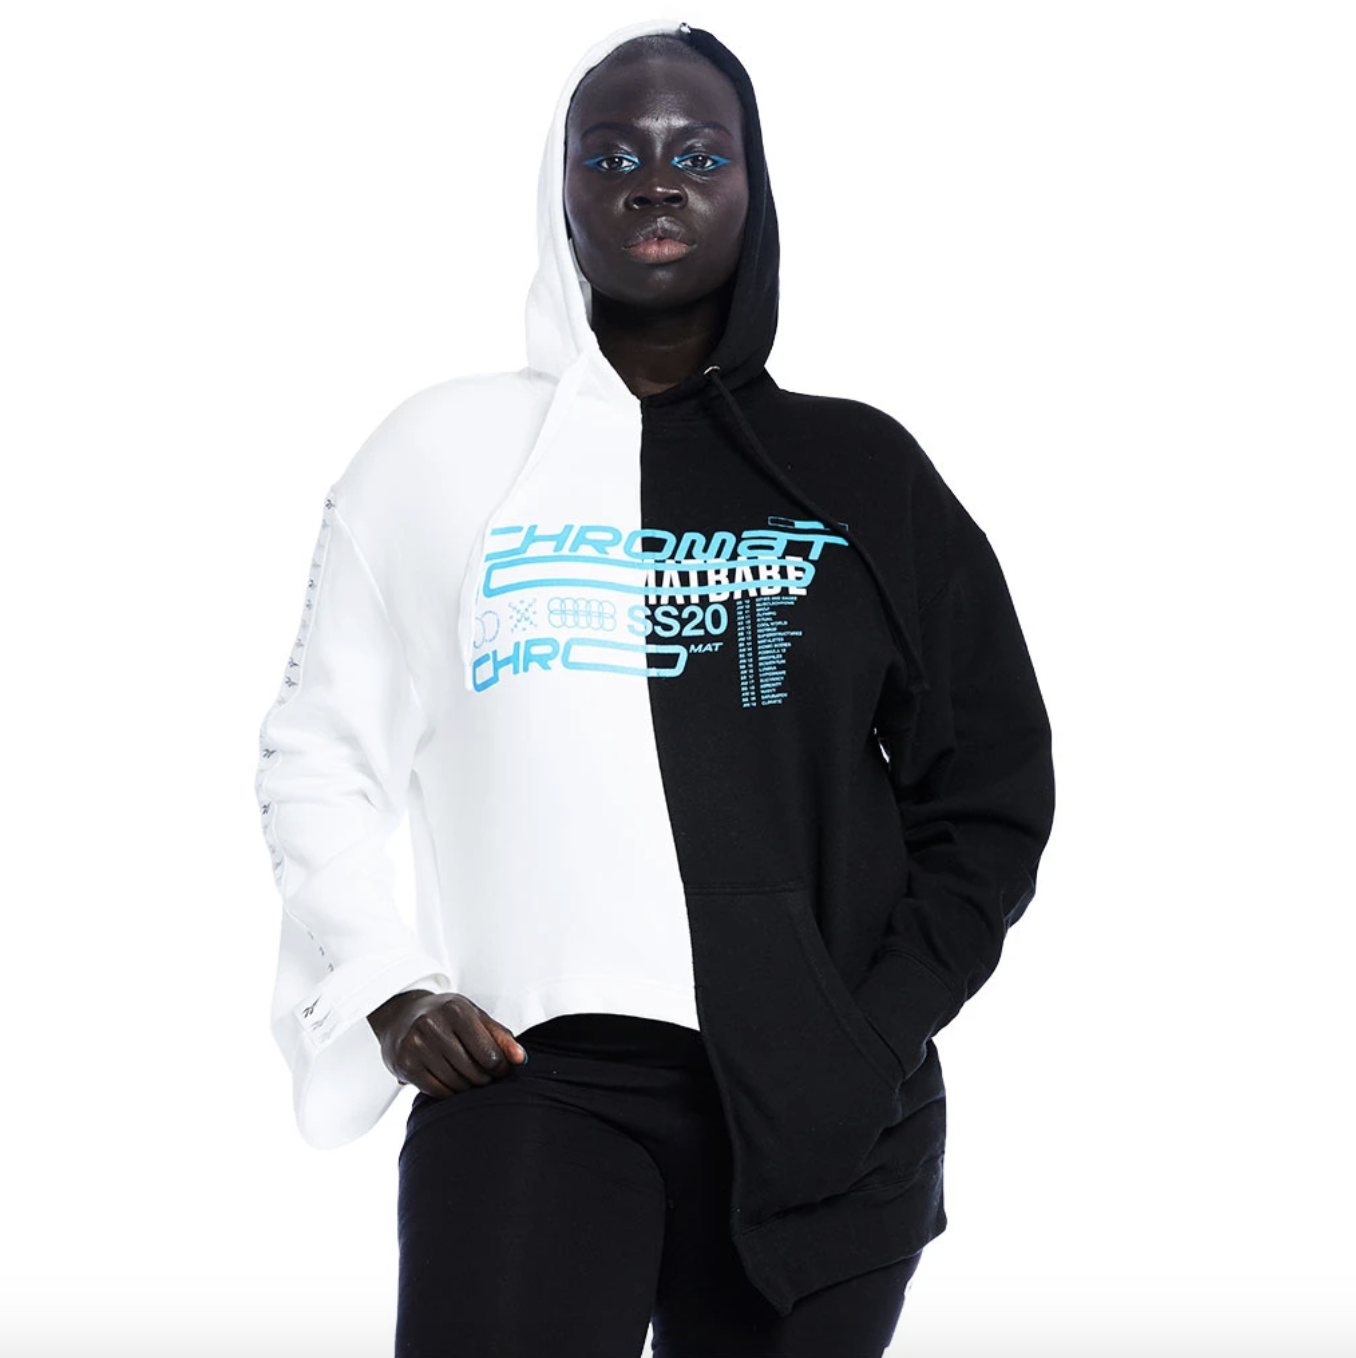 model wearing the black and white hoodie with blue writing